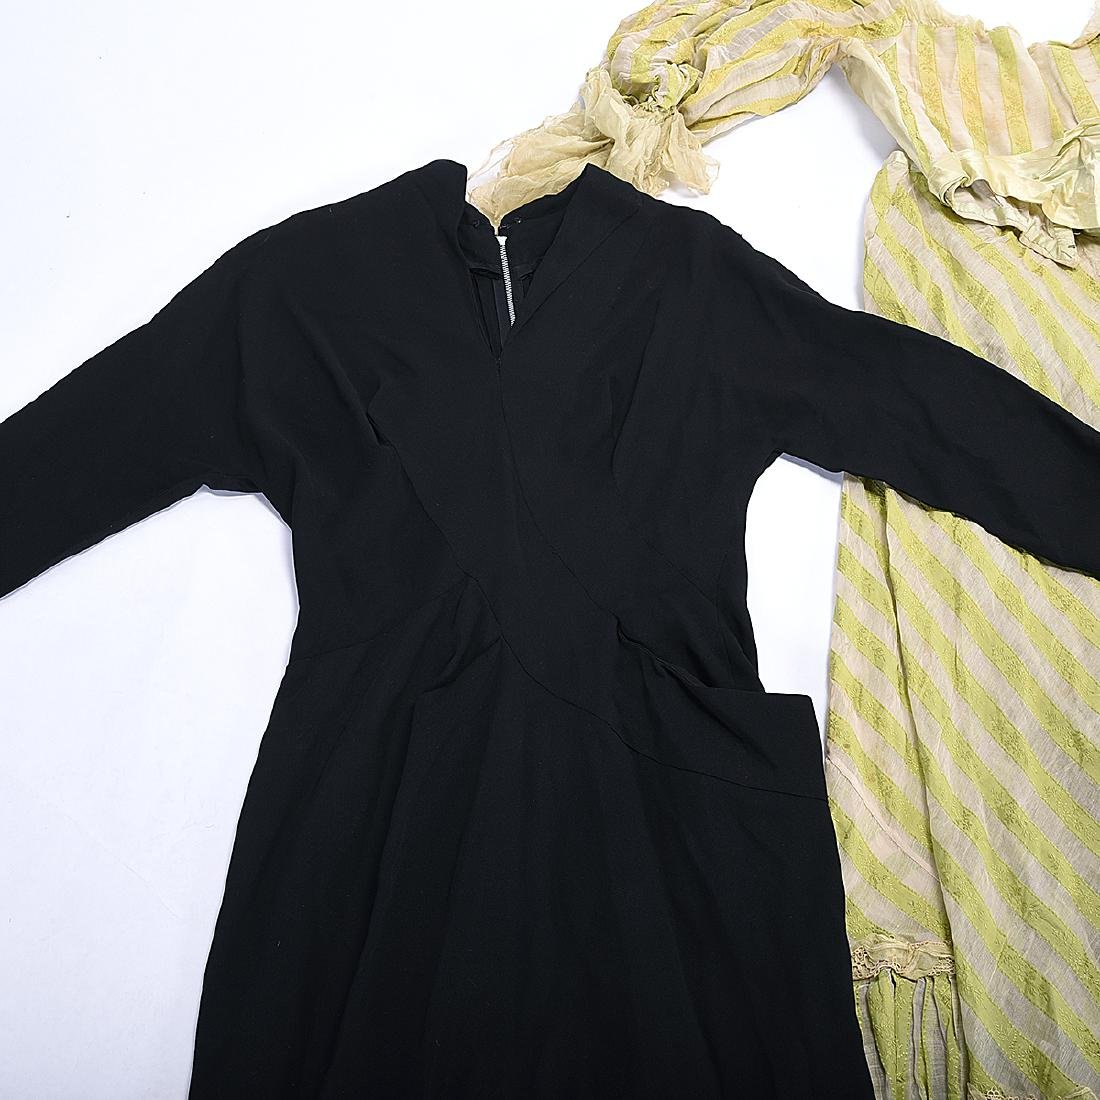 Lot of Antique Clothing - 4